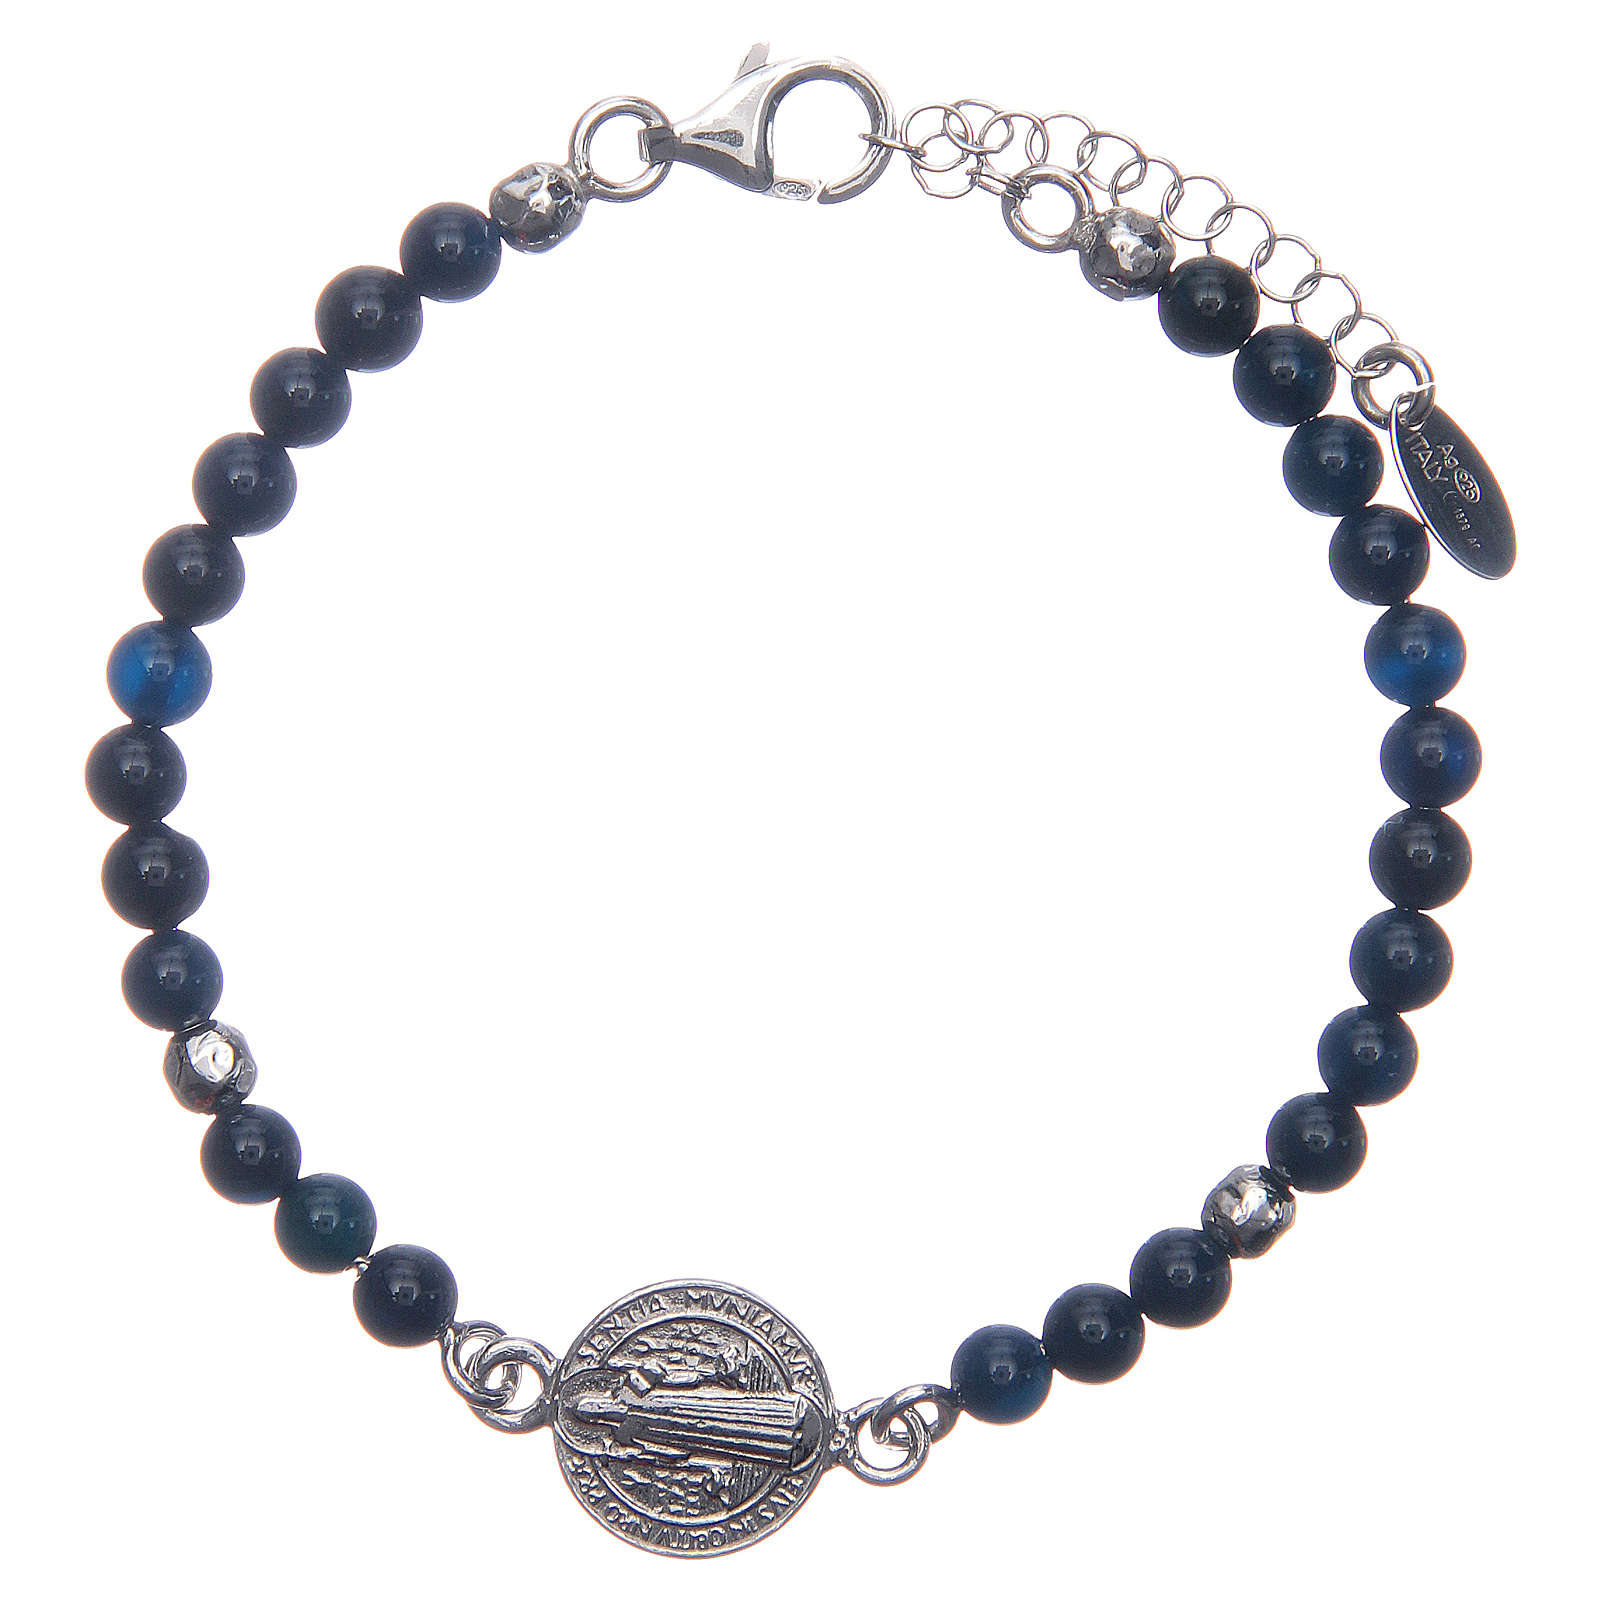 Saint Benedict medal bracelet with blue agate beads 4